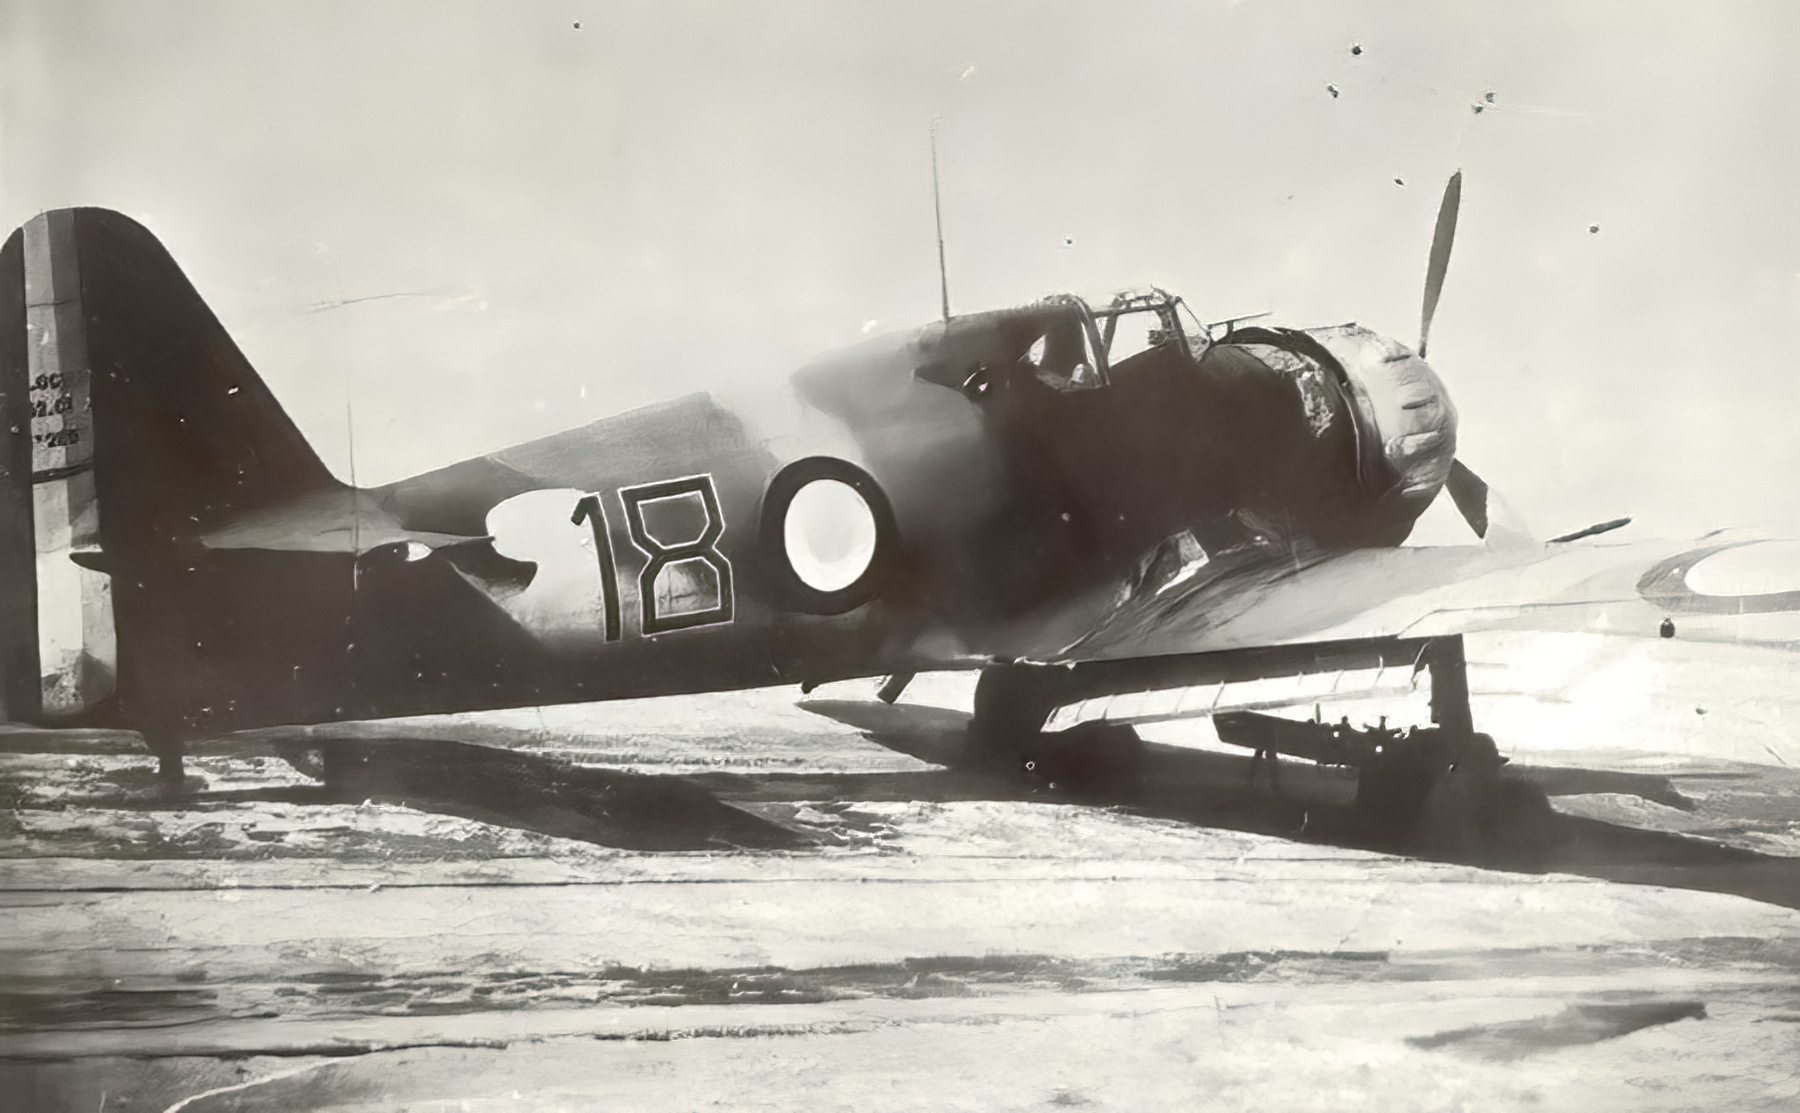 French Airforce Bloch MB 152 sn289 GC 1.8 Black 18 France 1940 web 01